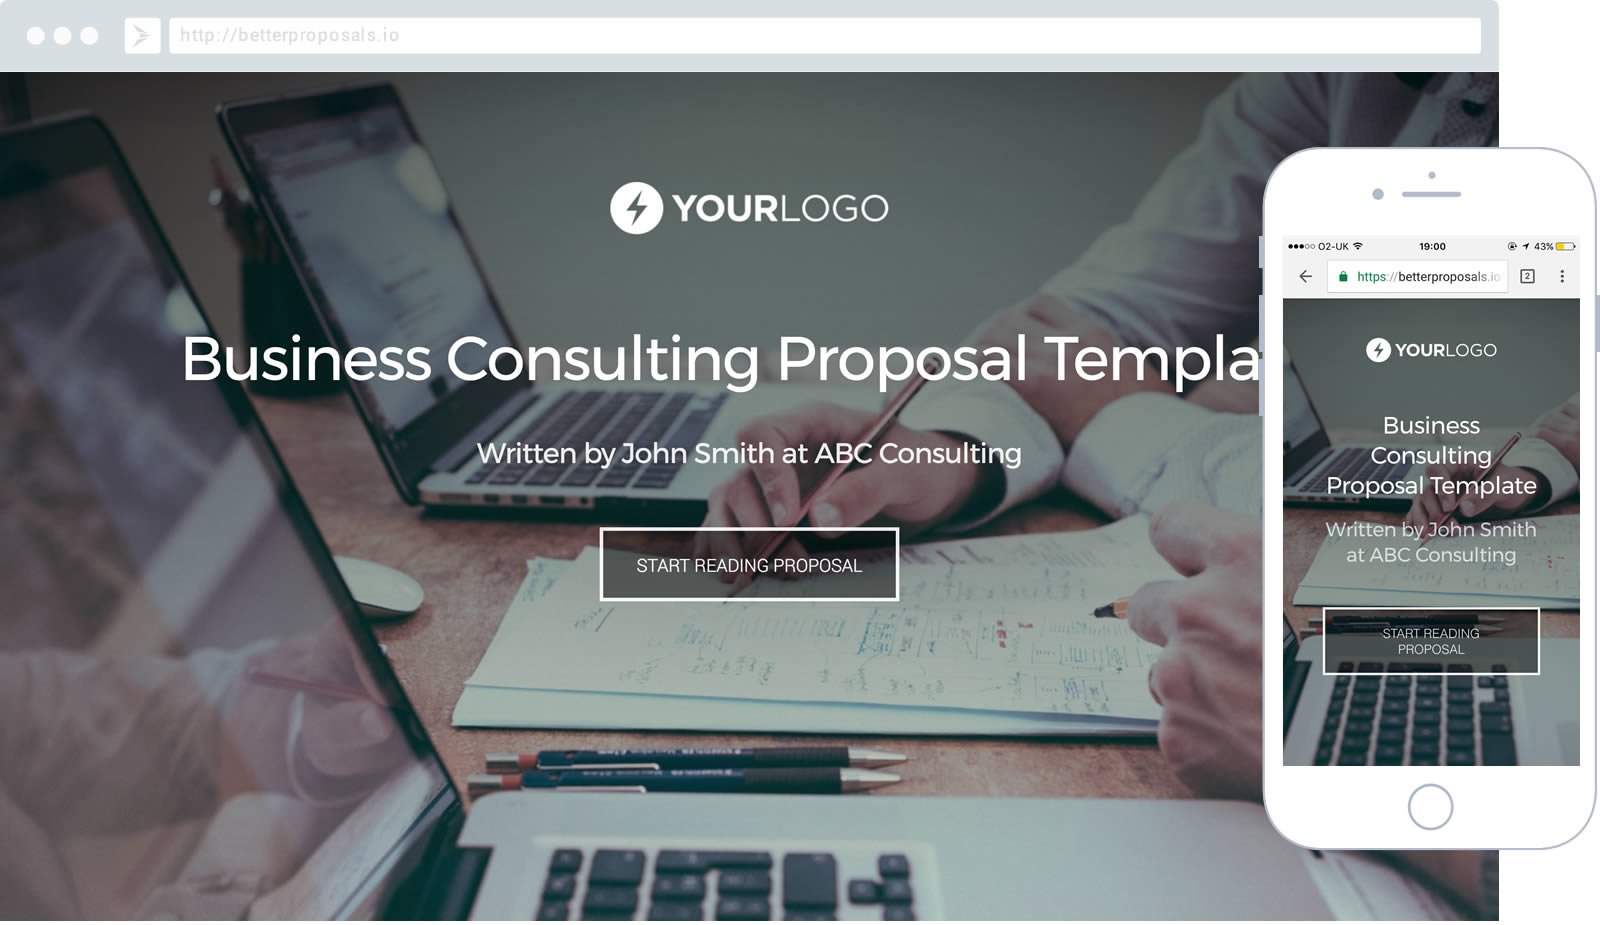 Business consulting proposal template better proposals business consulting proposal template proposal template for any consultant helping to improve businesses wajeb